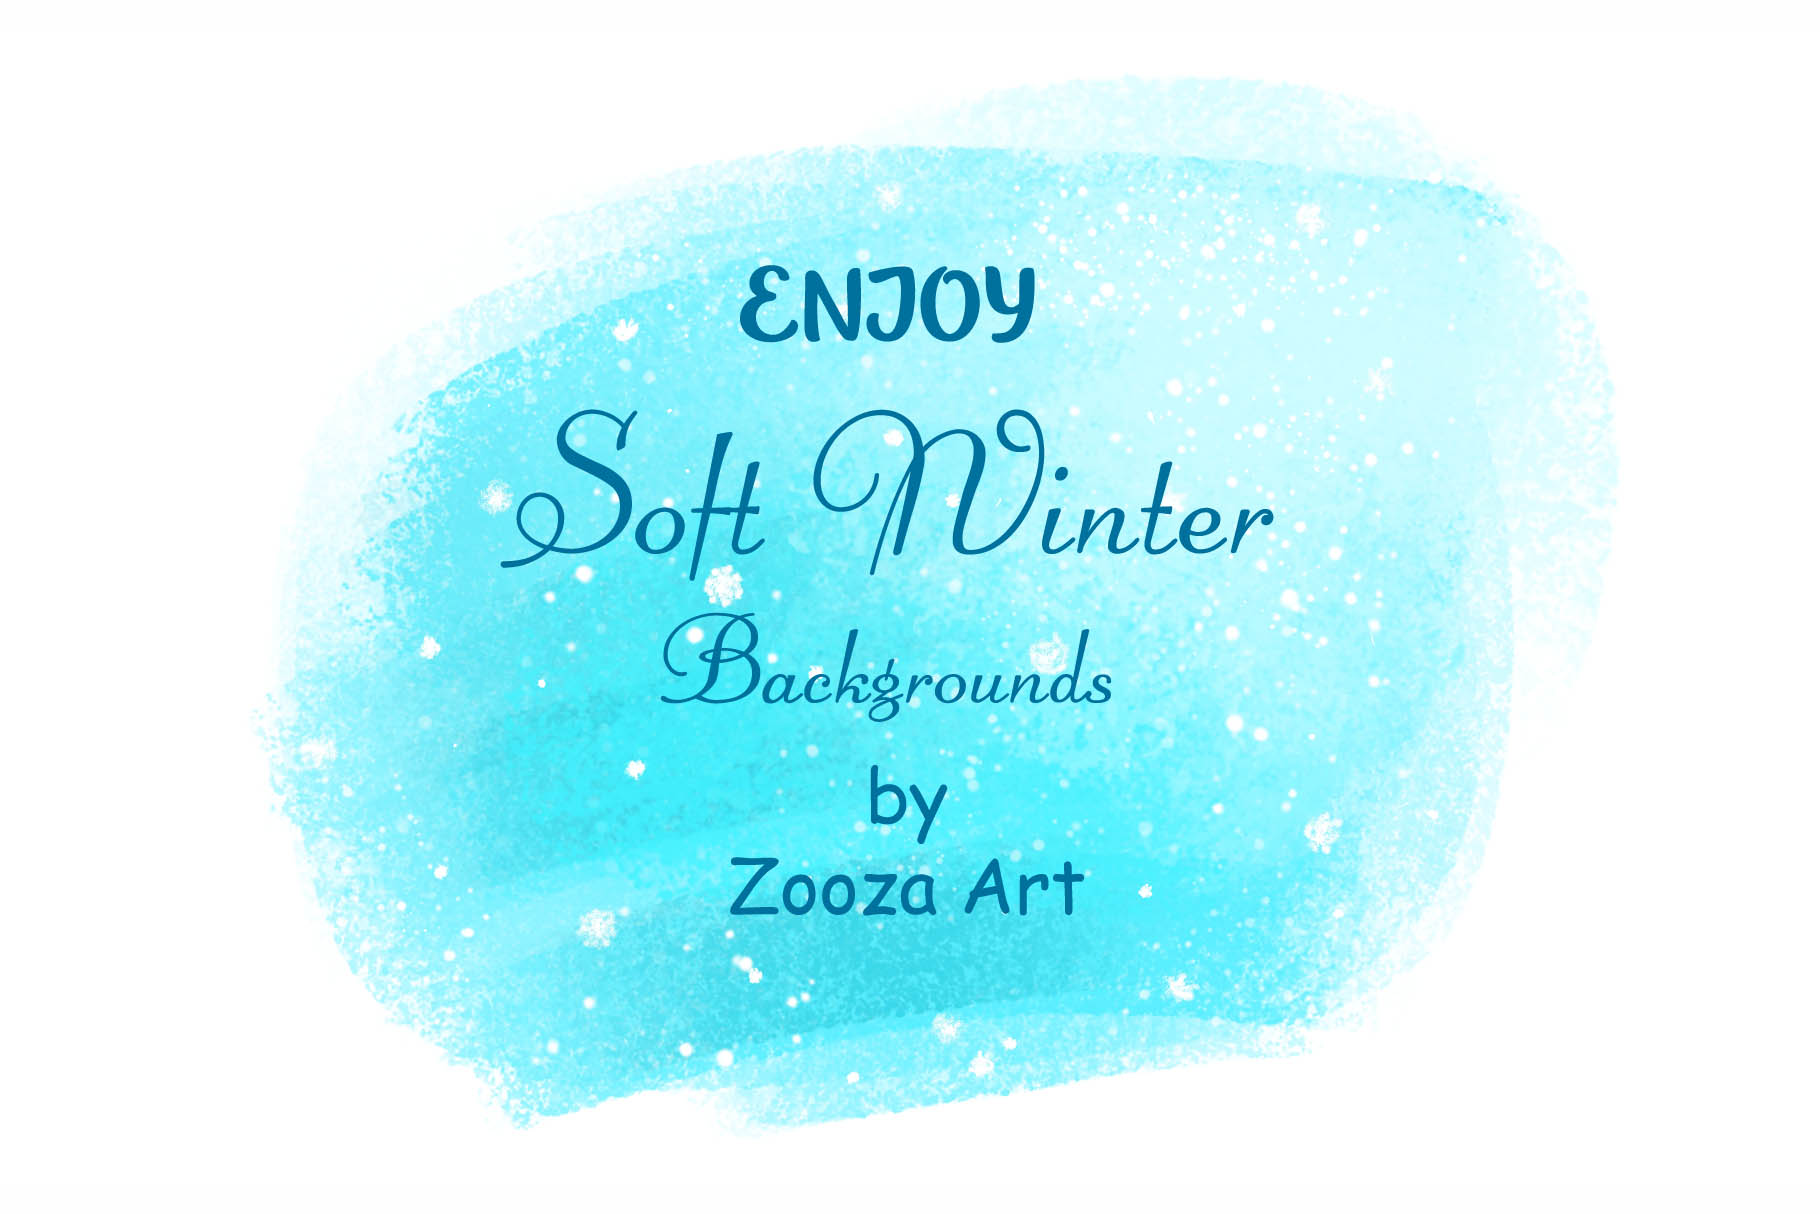 Soft winter snowy backgrounds example image 5